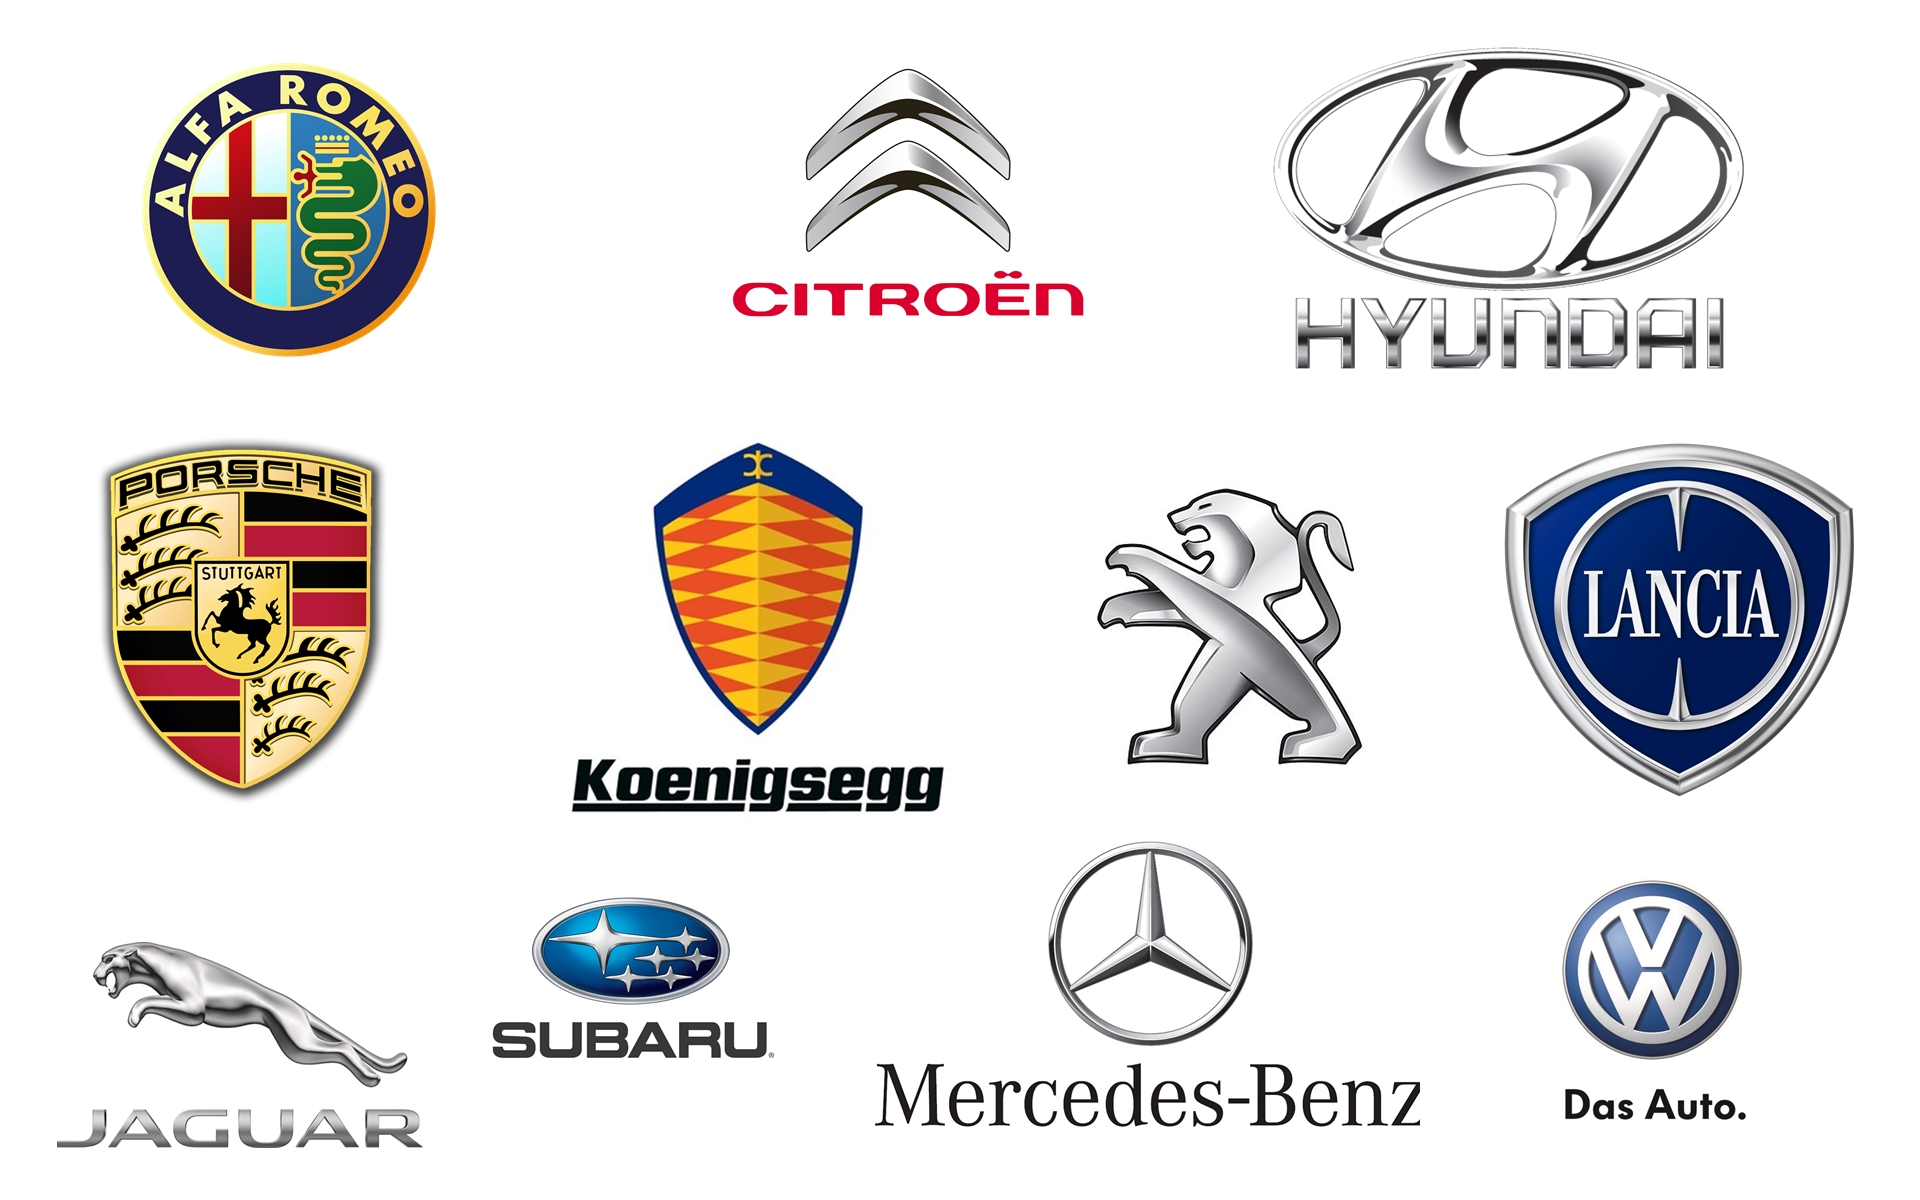 Commonly Mispronounced Car Brand Names And The Right Way To Speak